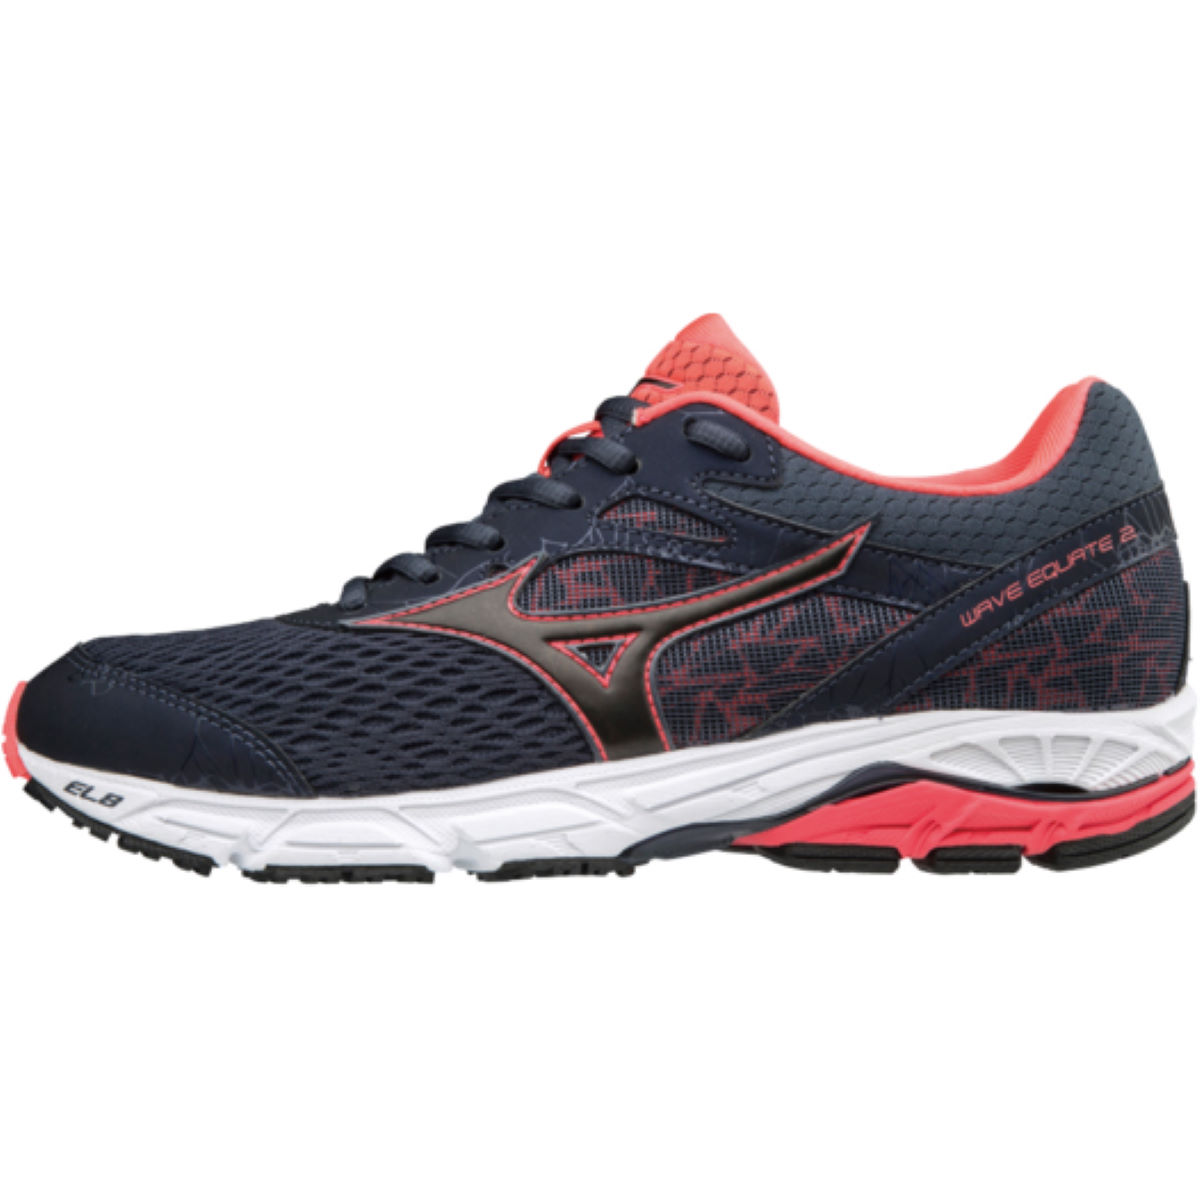 Chaussures Femme Mizuno Wave Equate 2 - UK 4 Ombre Blue / Black /